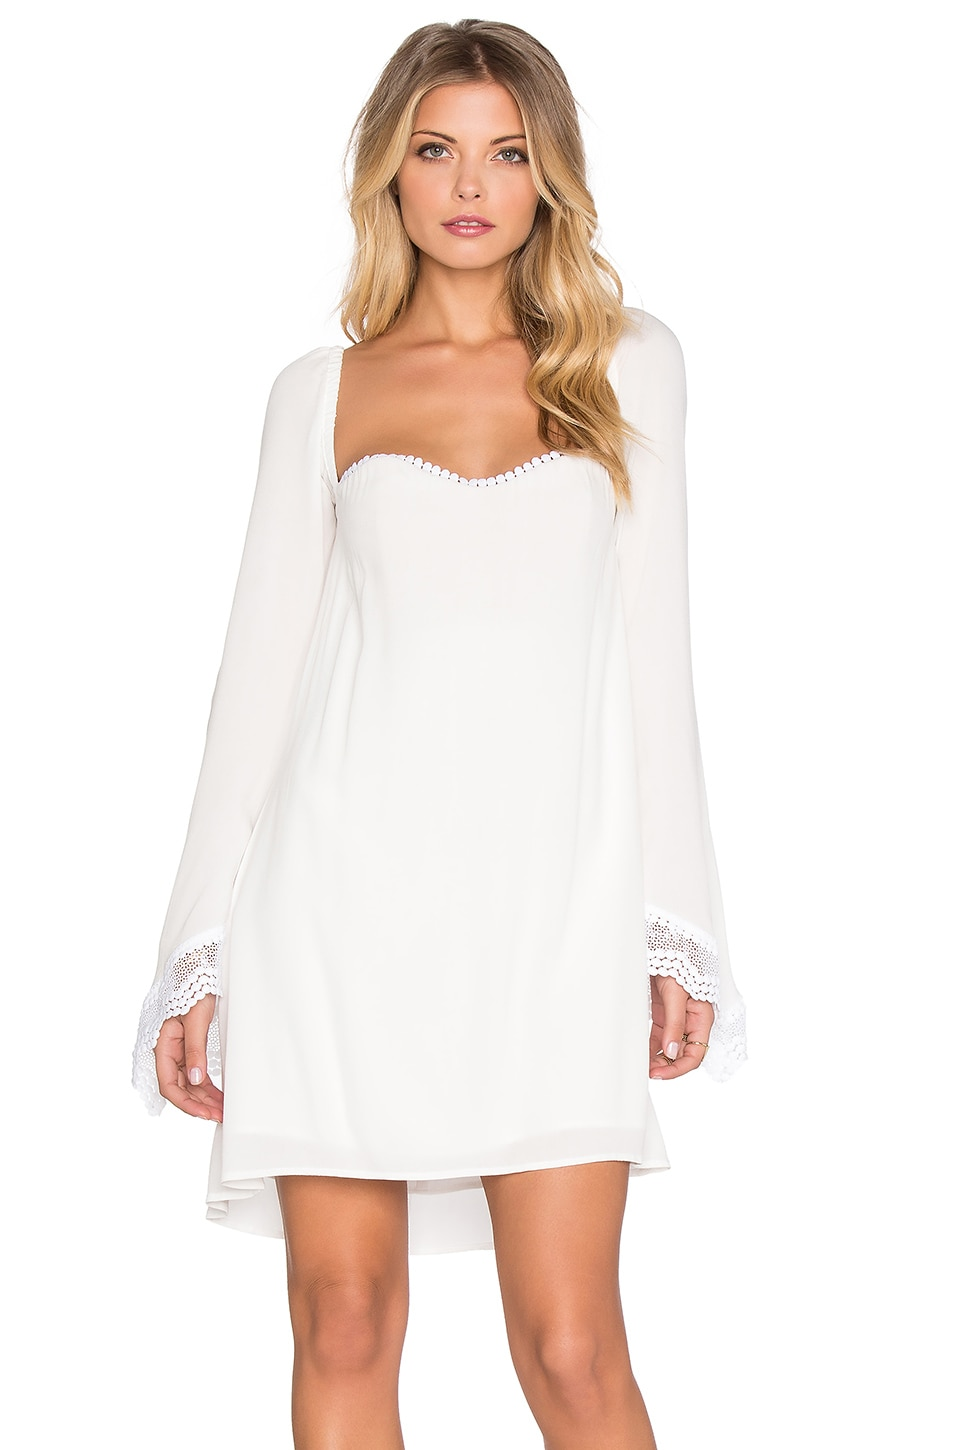 STONE_COLD_FOX Pieces Dress in White